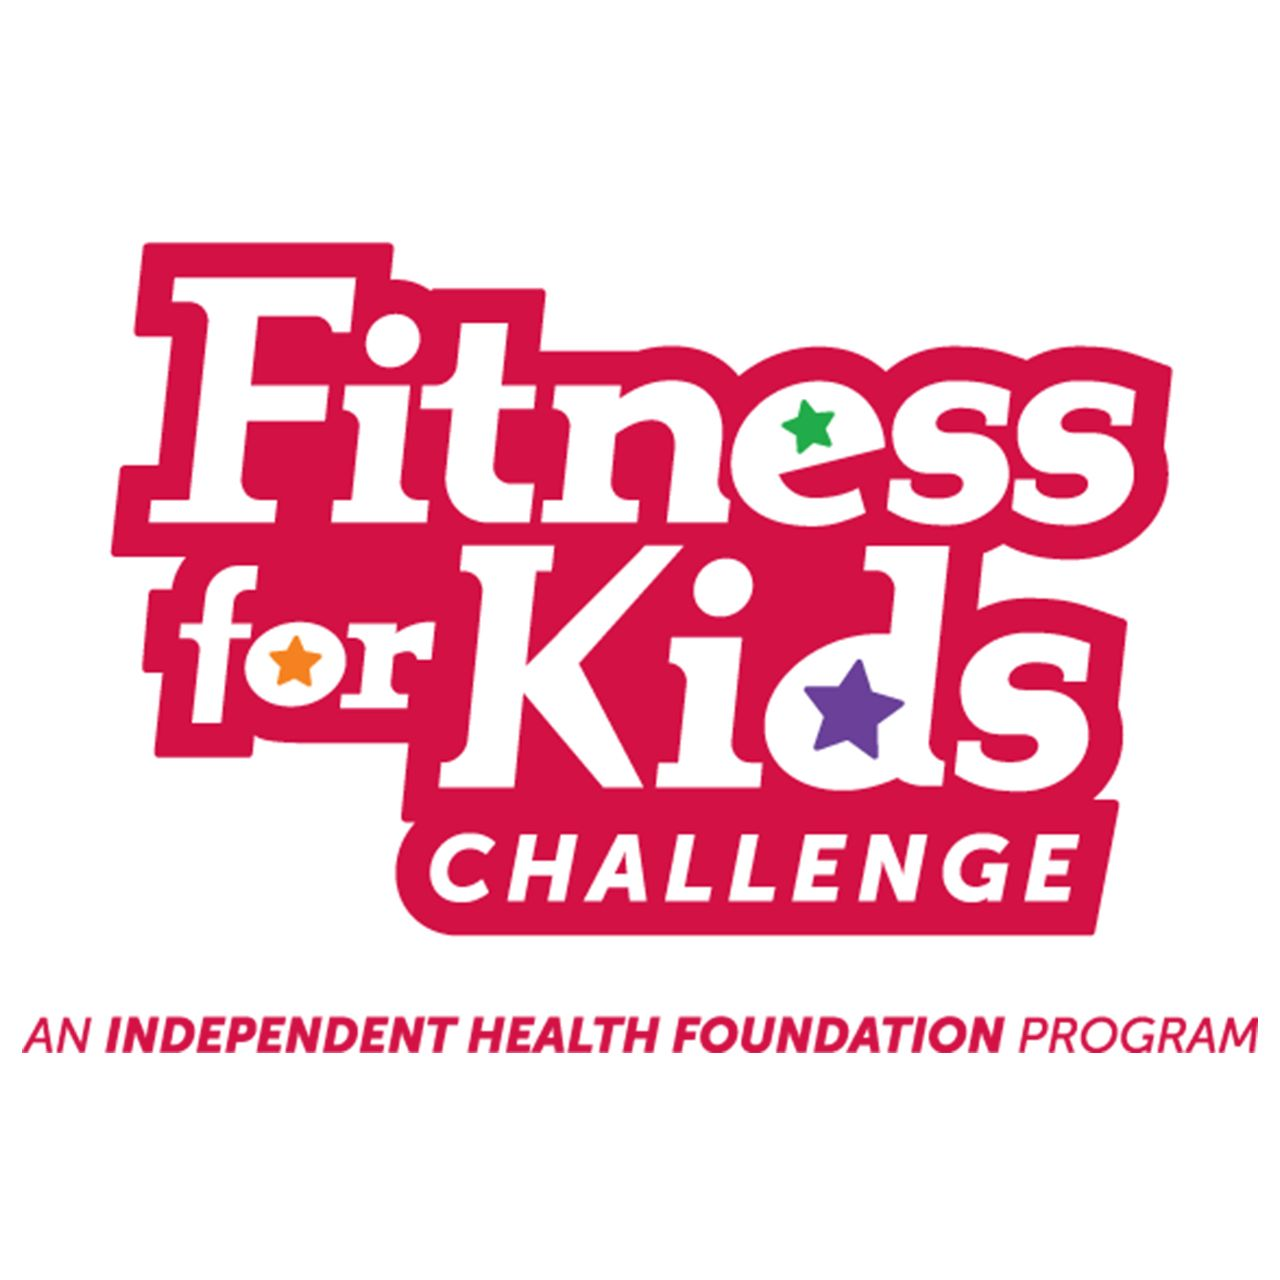 Independent Health Foundation's Fitness for Kids Challenge